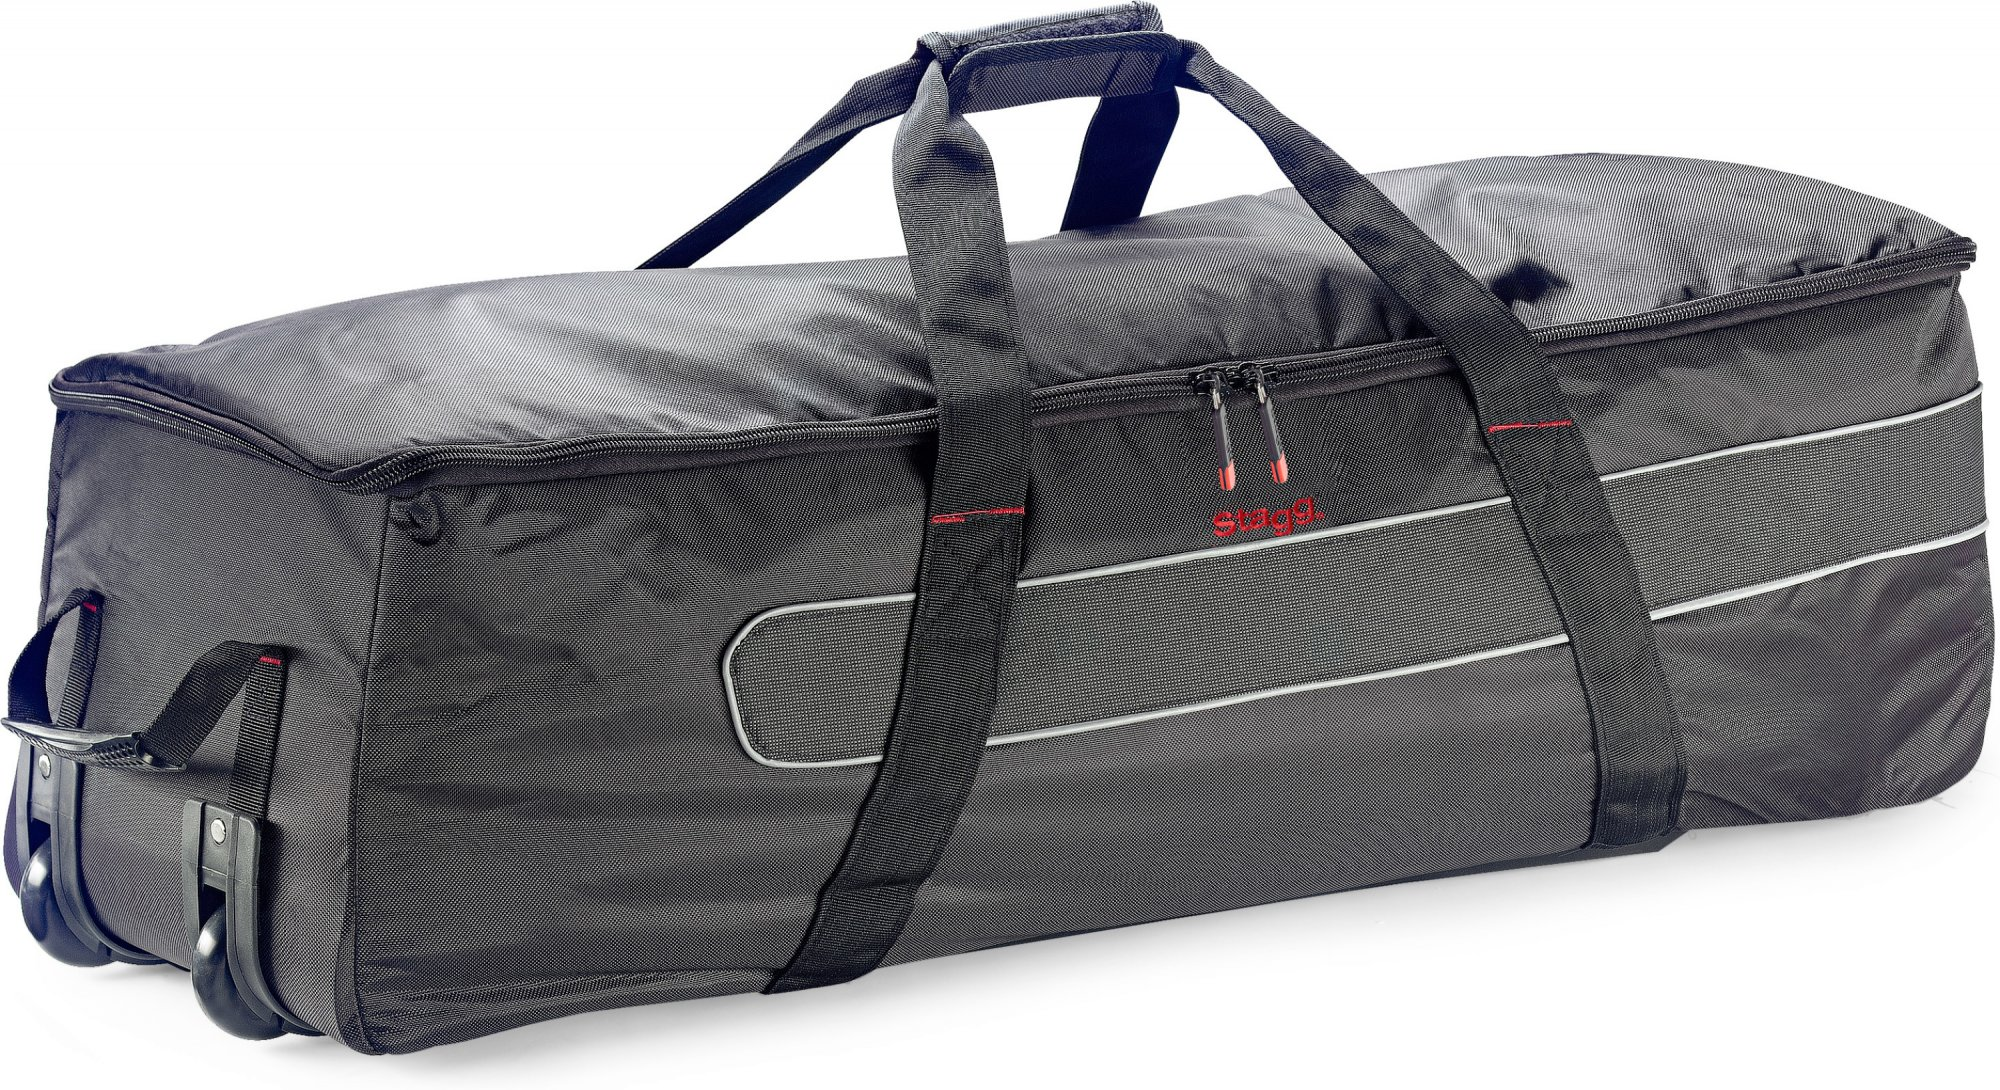 Stagg SPSB-48T Professional Hardware Bag